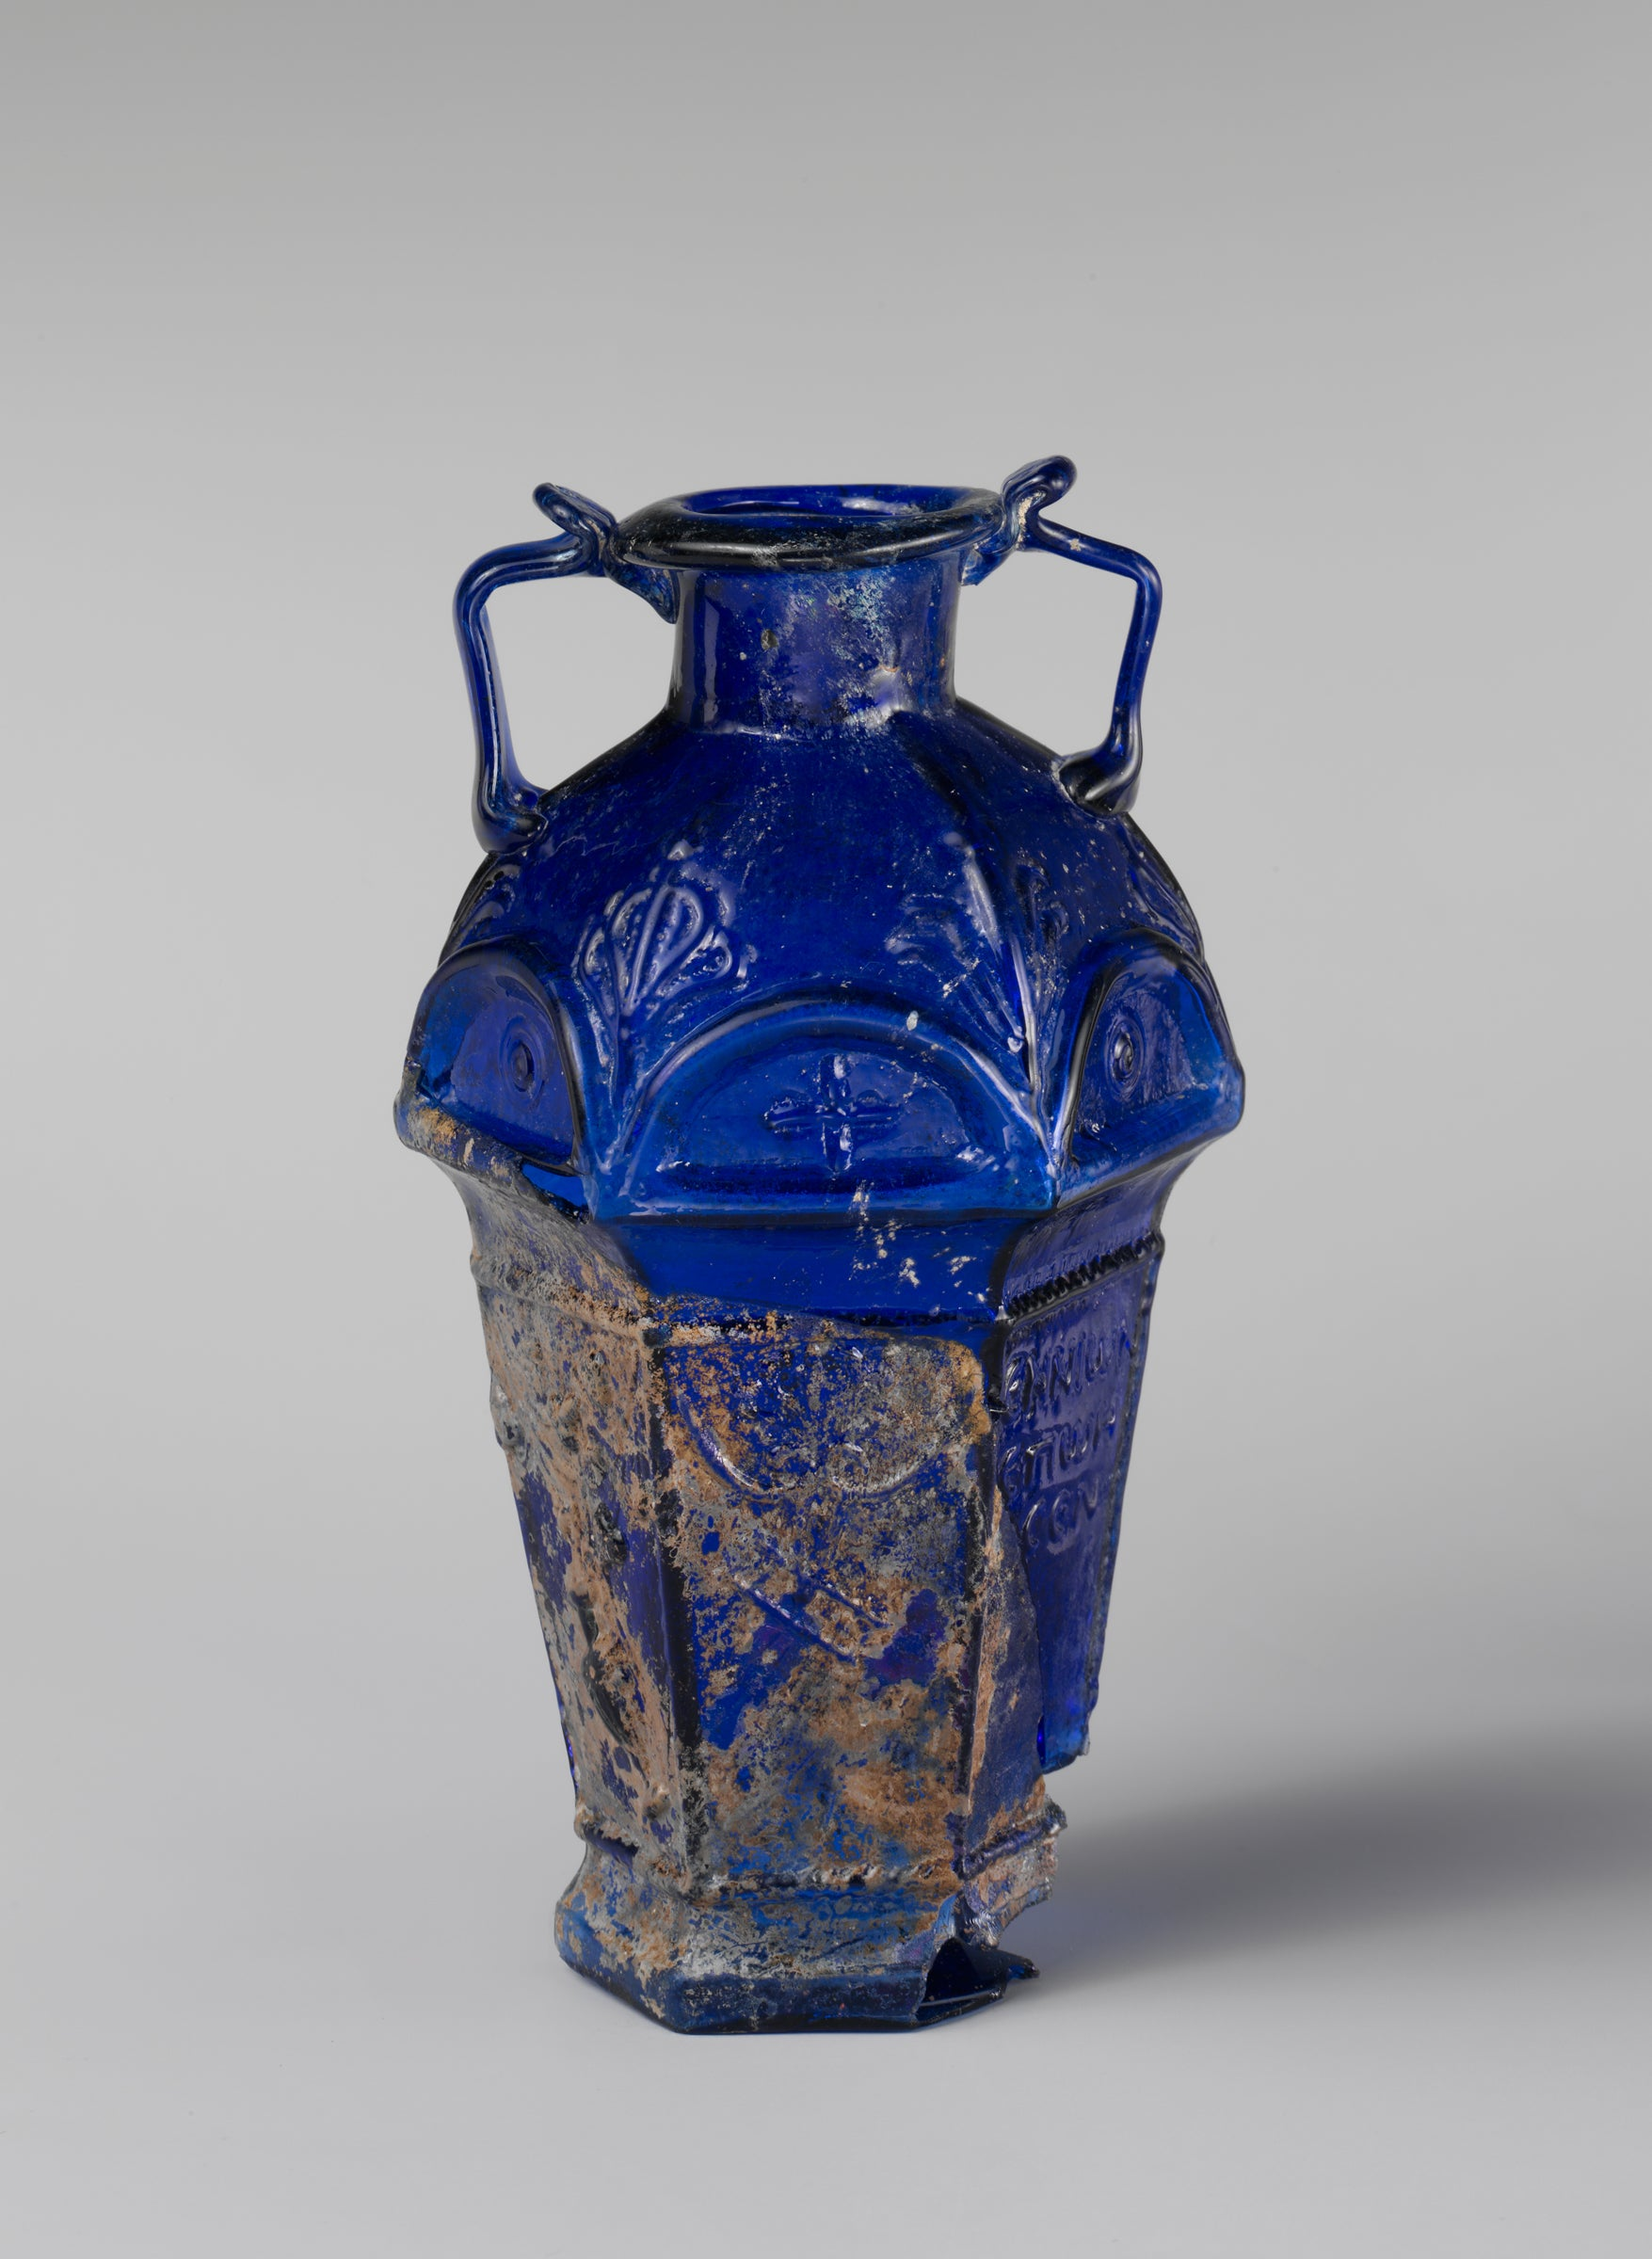 The First Brand Manager Was a 1st Century Roman Glassblower